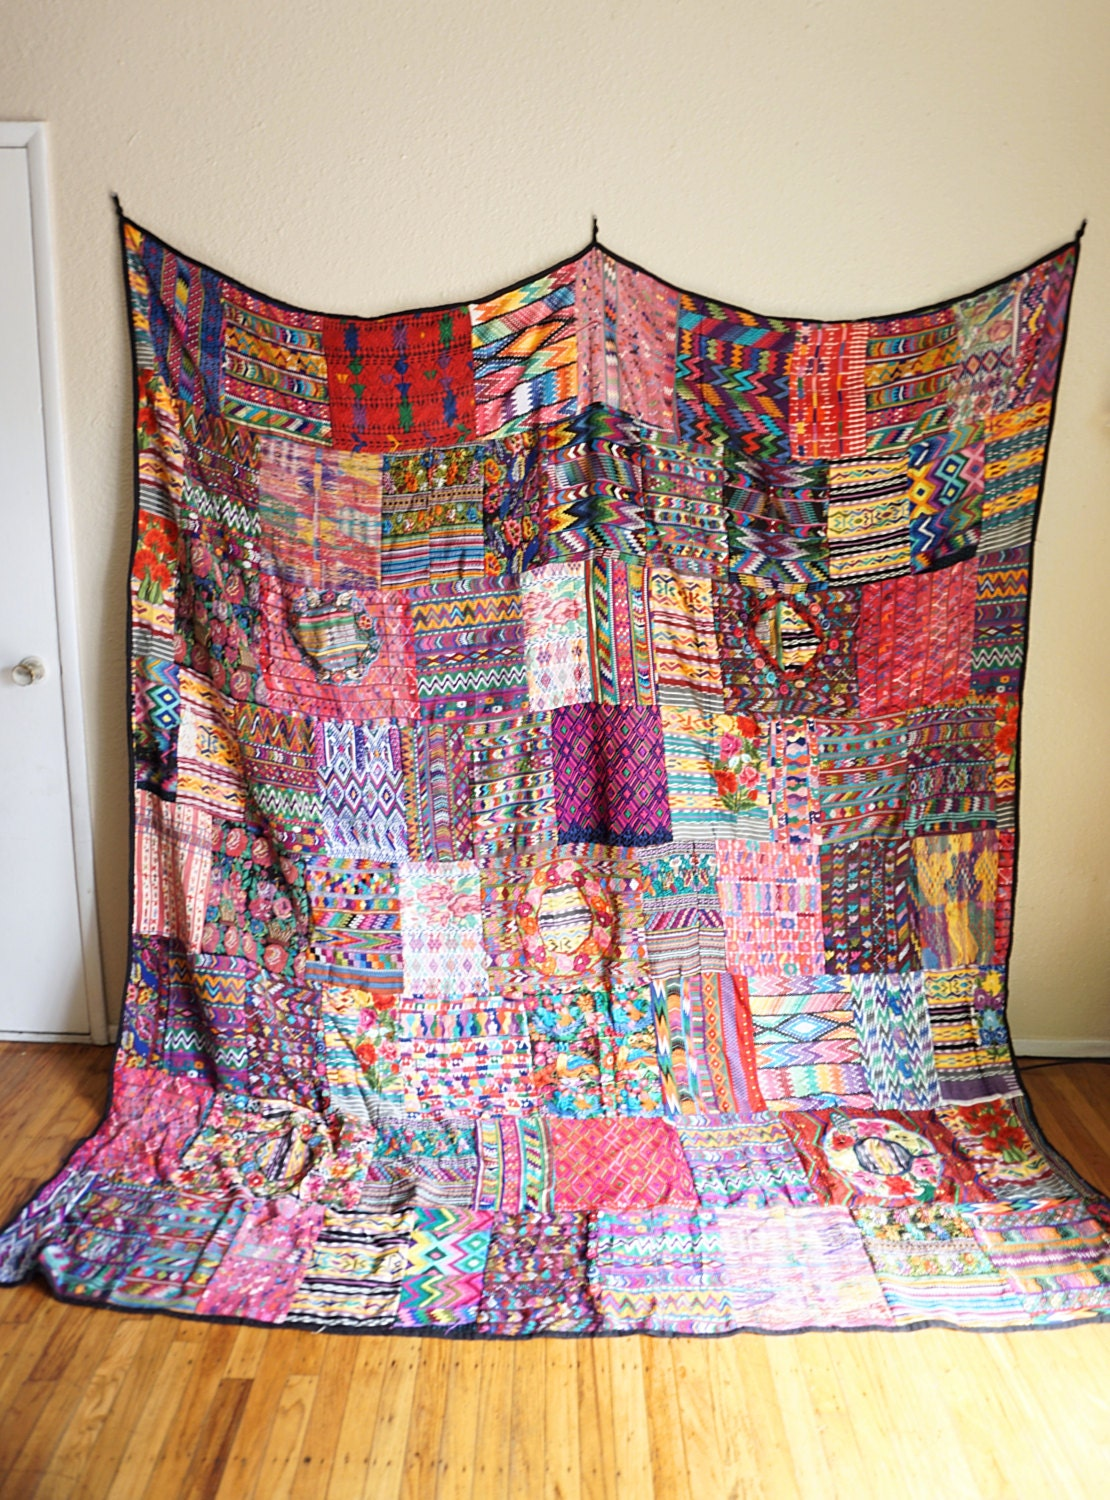 Amazing Central American quilt